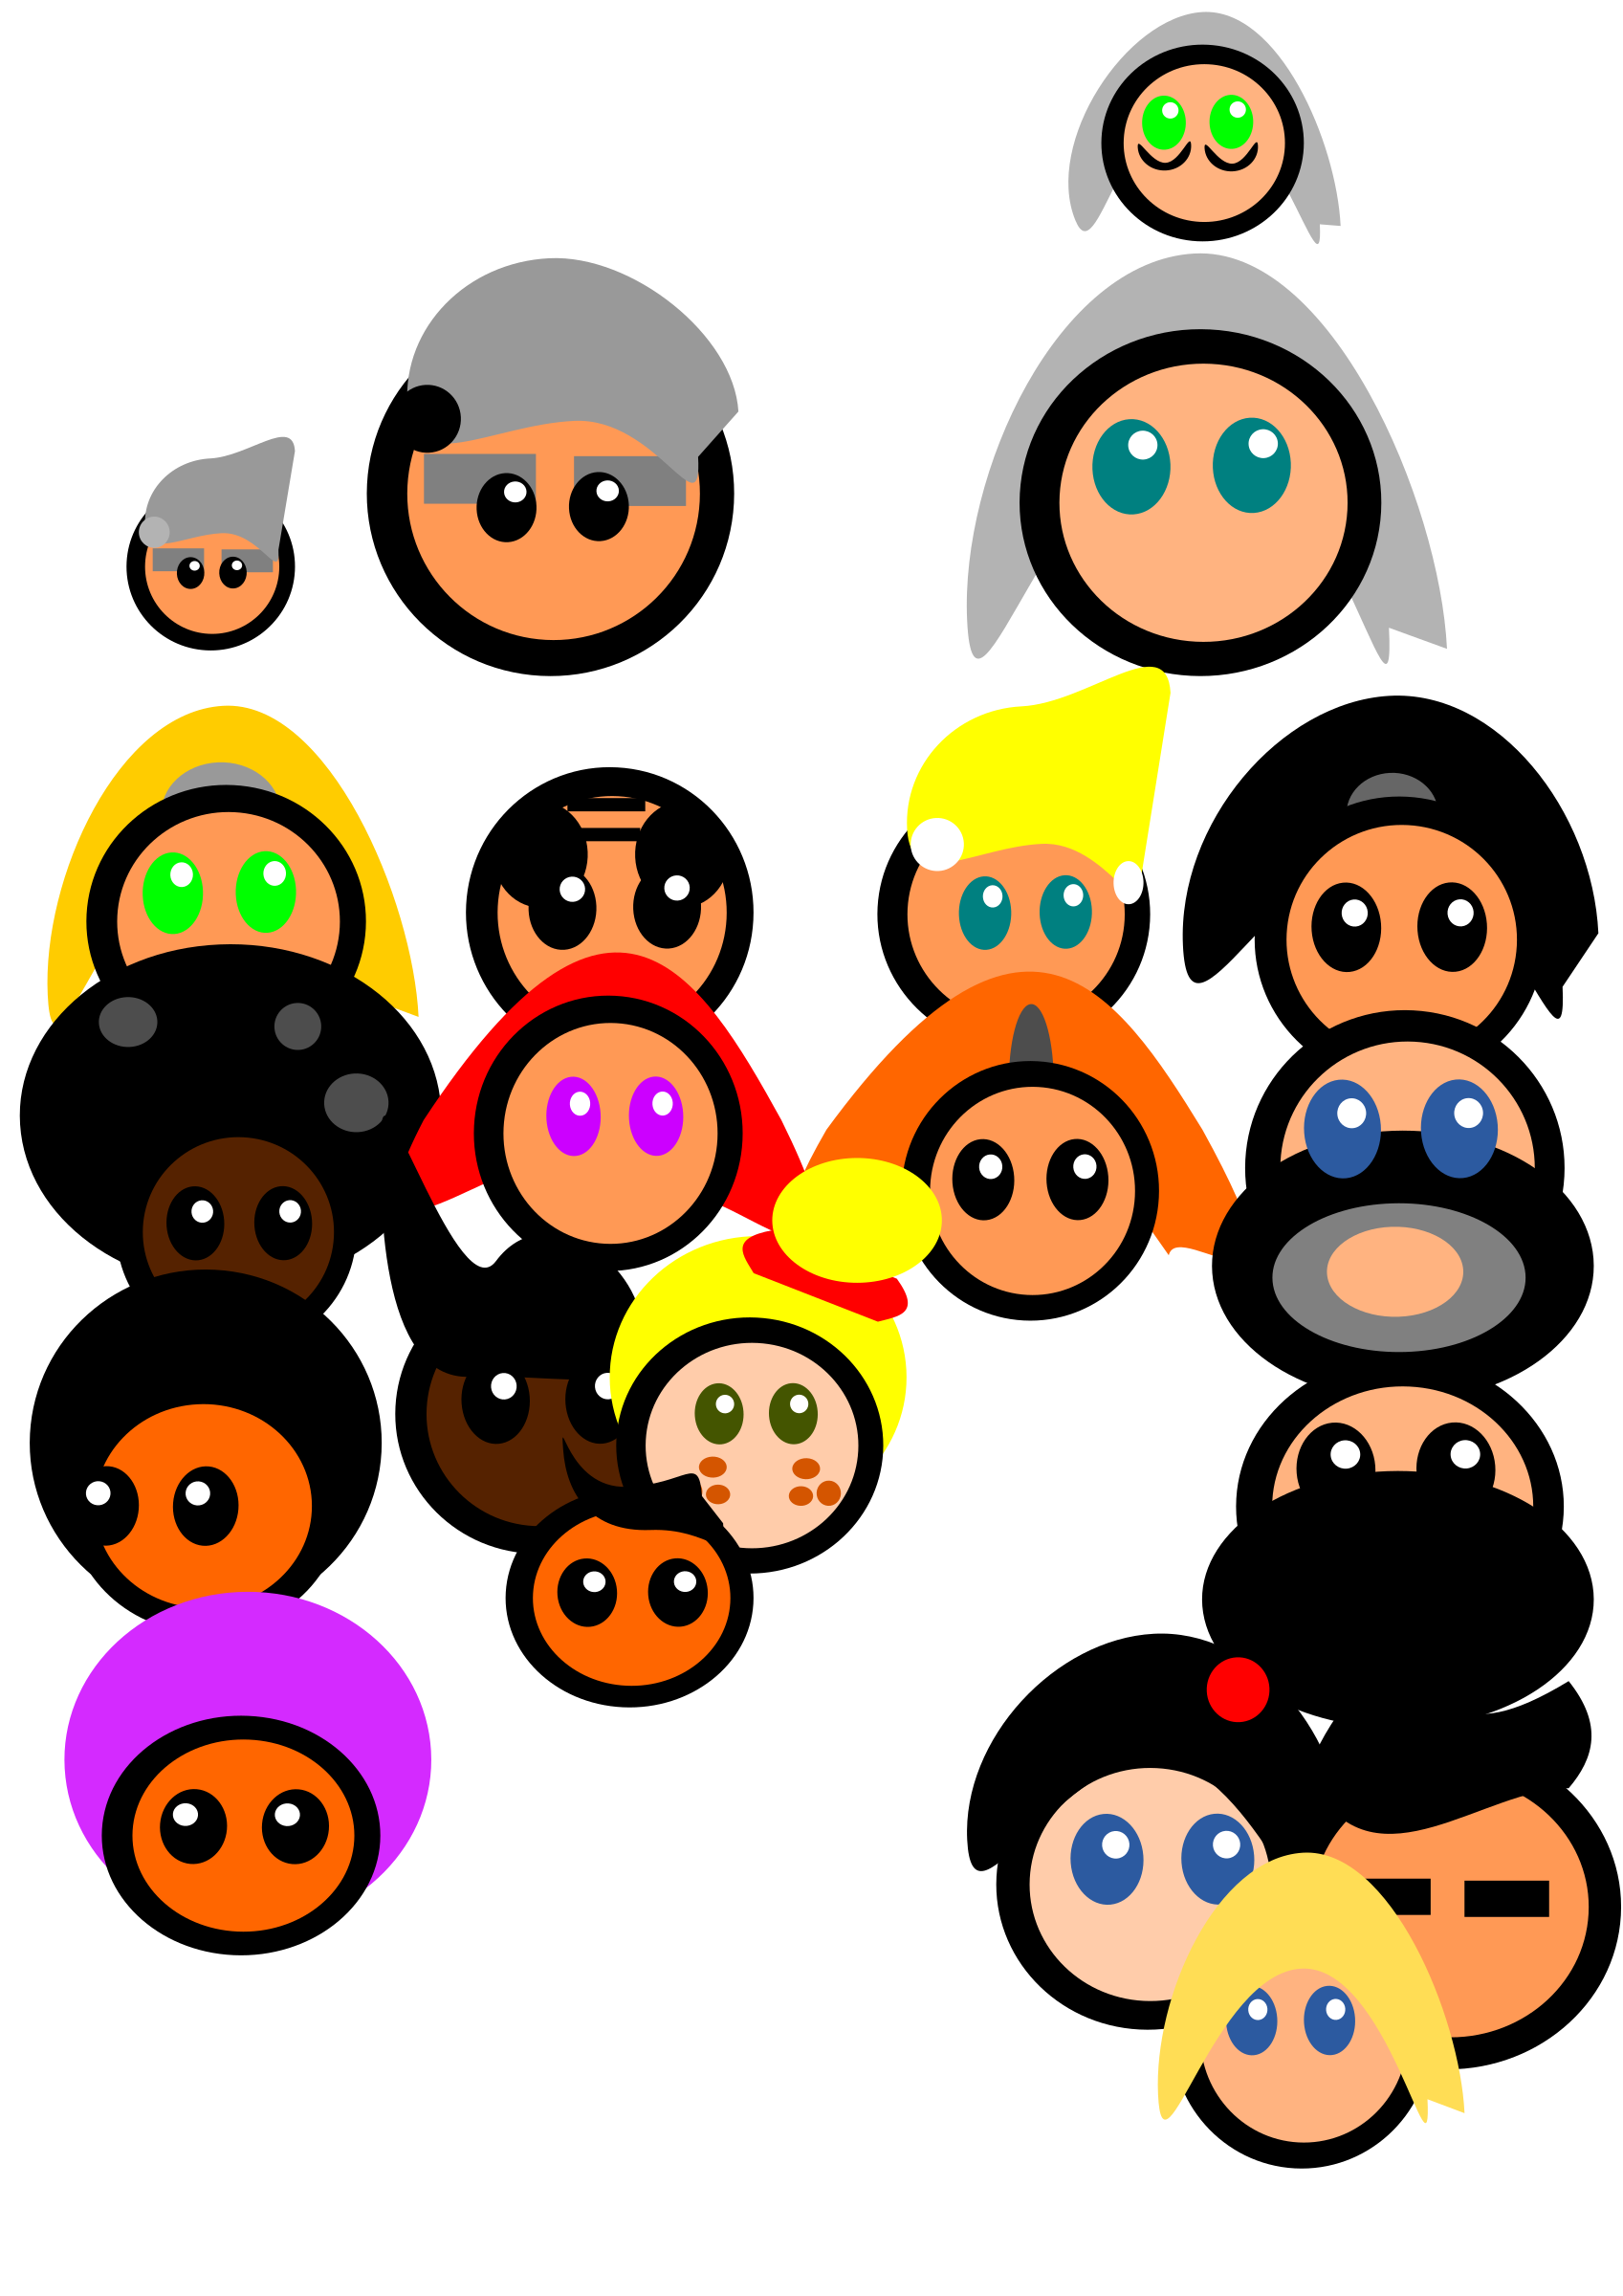 Pilot relationship free on. Faces clipart family tree